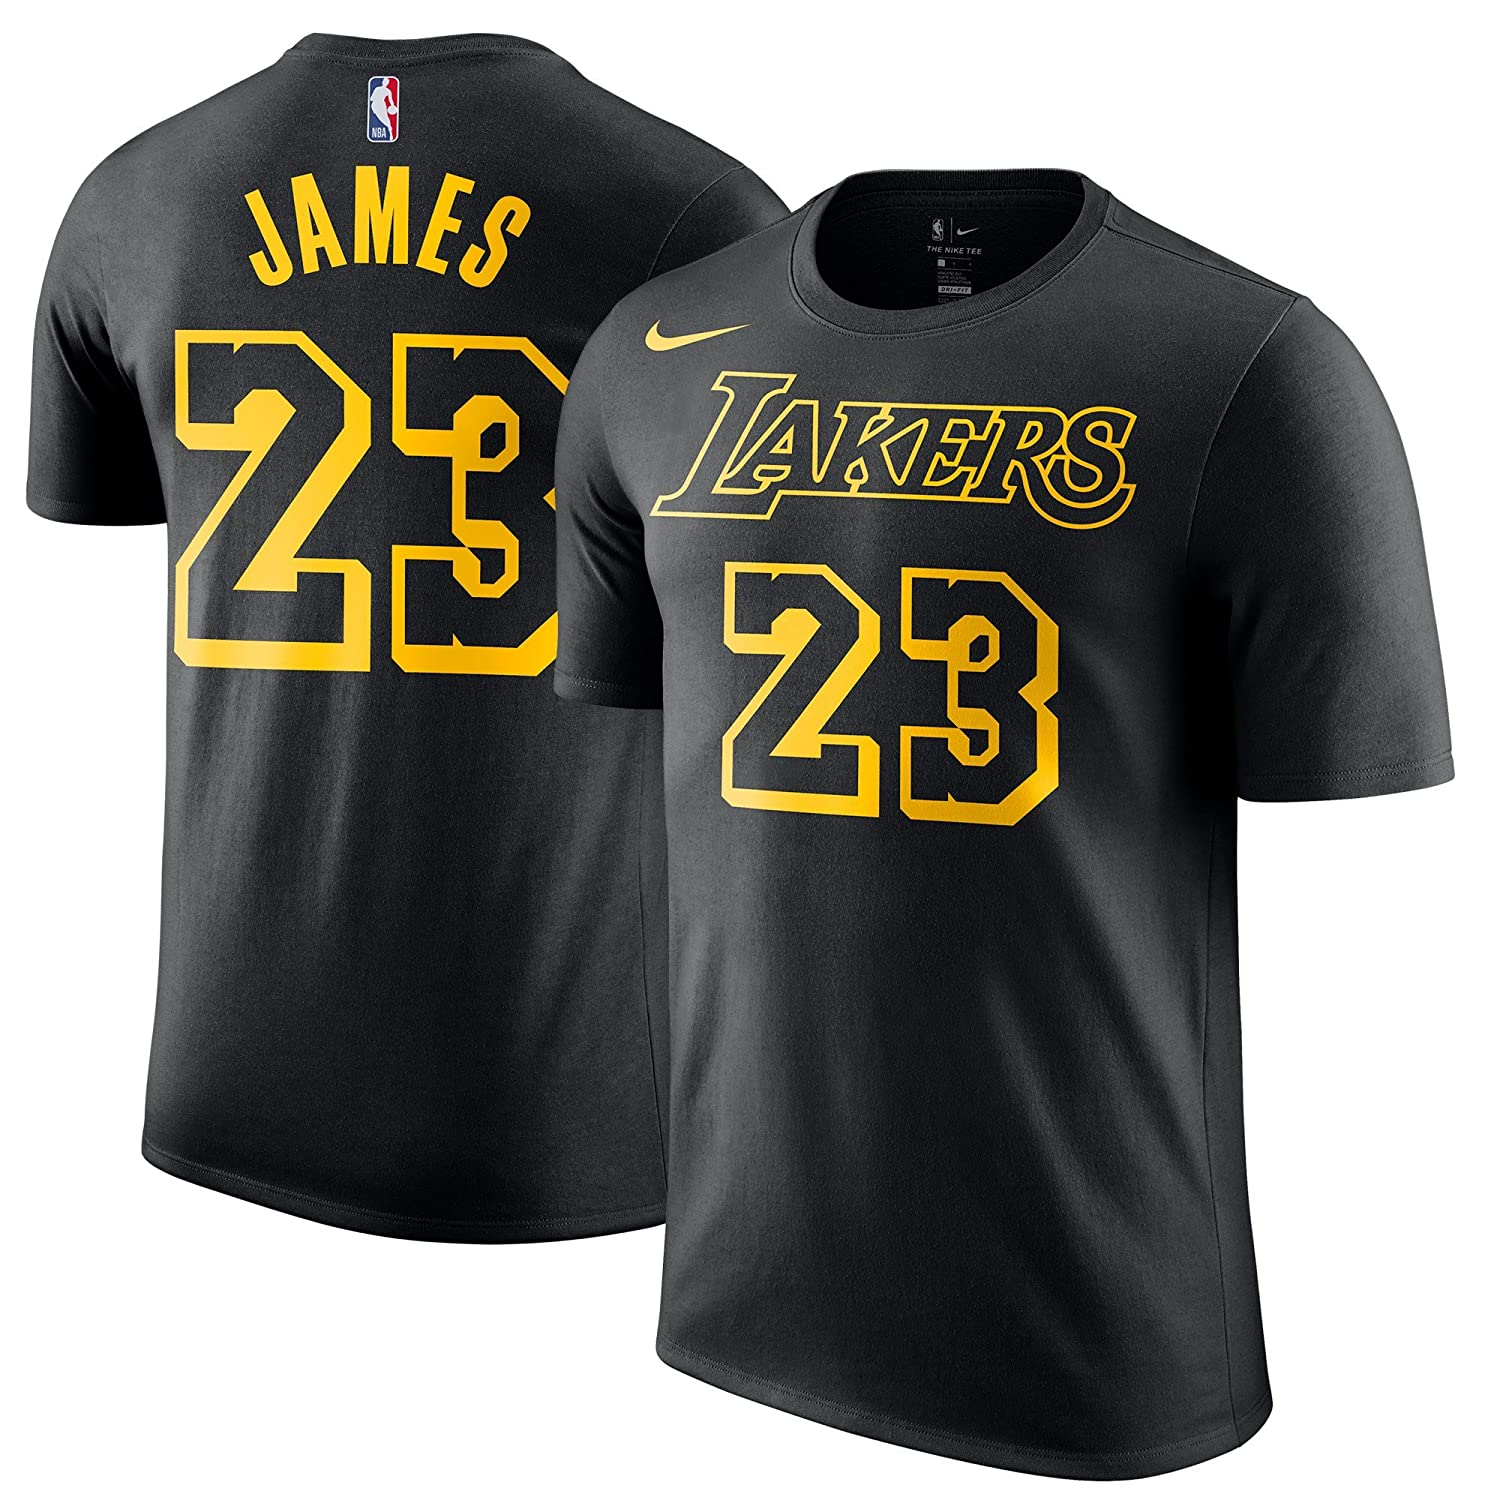 24e04667d Amazon.com: Nike Youth Lebron James Los Angeles Lakers City Edition ...